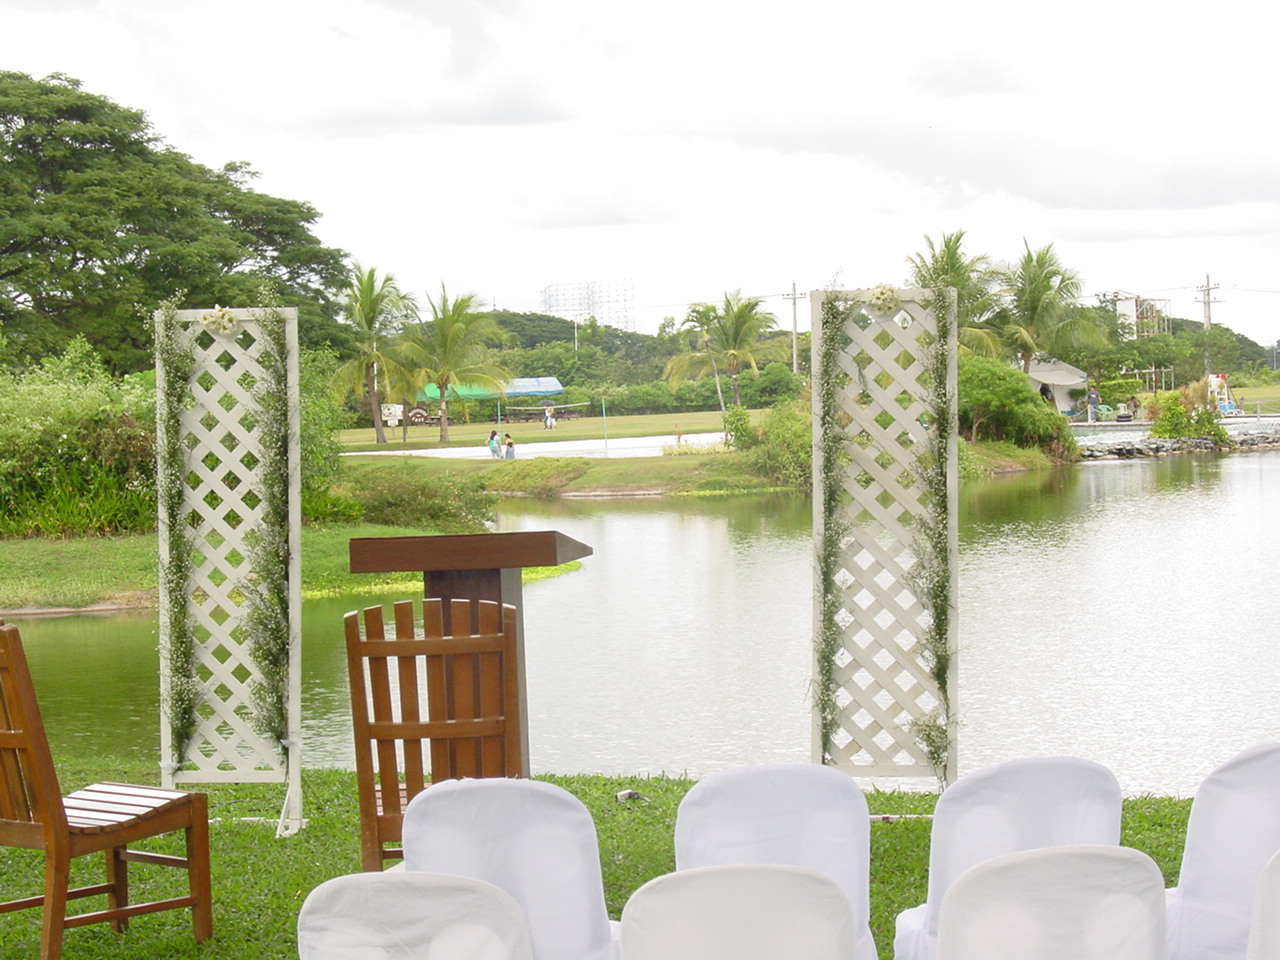 yats clearwater resort country club clark freeport zone